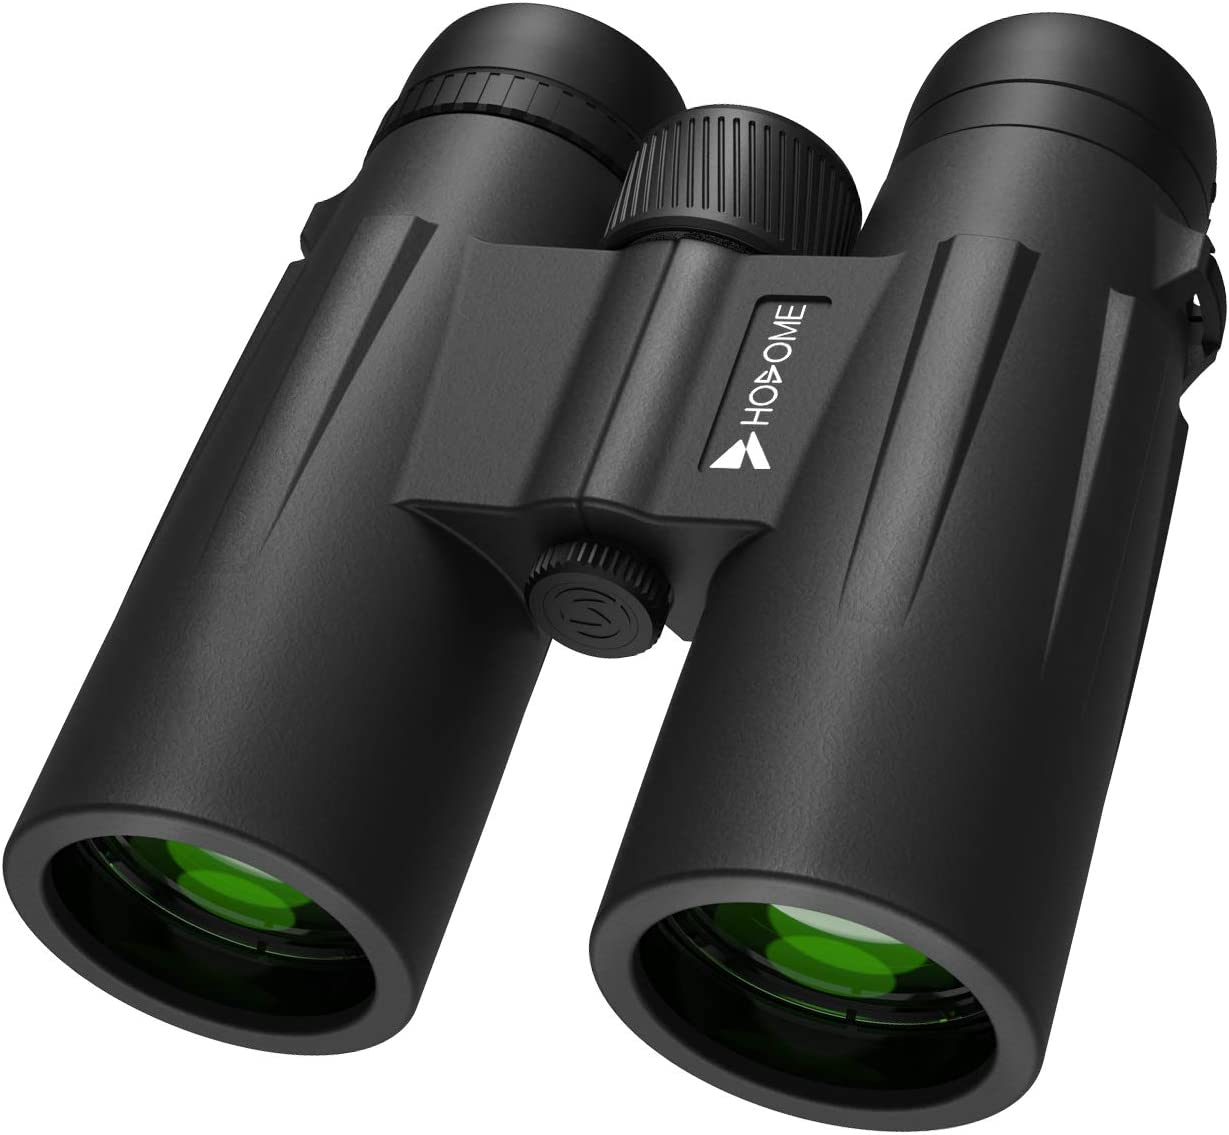 Hosome 12×42 Binoculars for Adults, Compact HD Binoculars for Bird Watching Travel Stargazing Hunting Concerts Sports with Clear Weak Light Vision, BAK4 Prism FMC Lens with Strap Carrying Bag 12×42